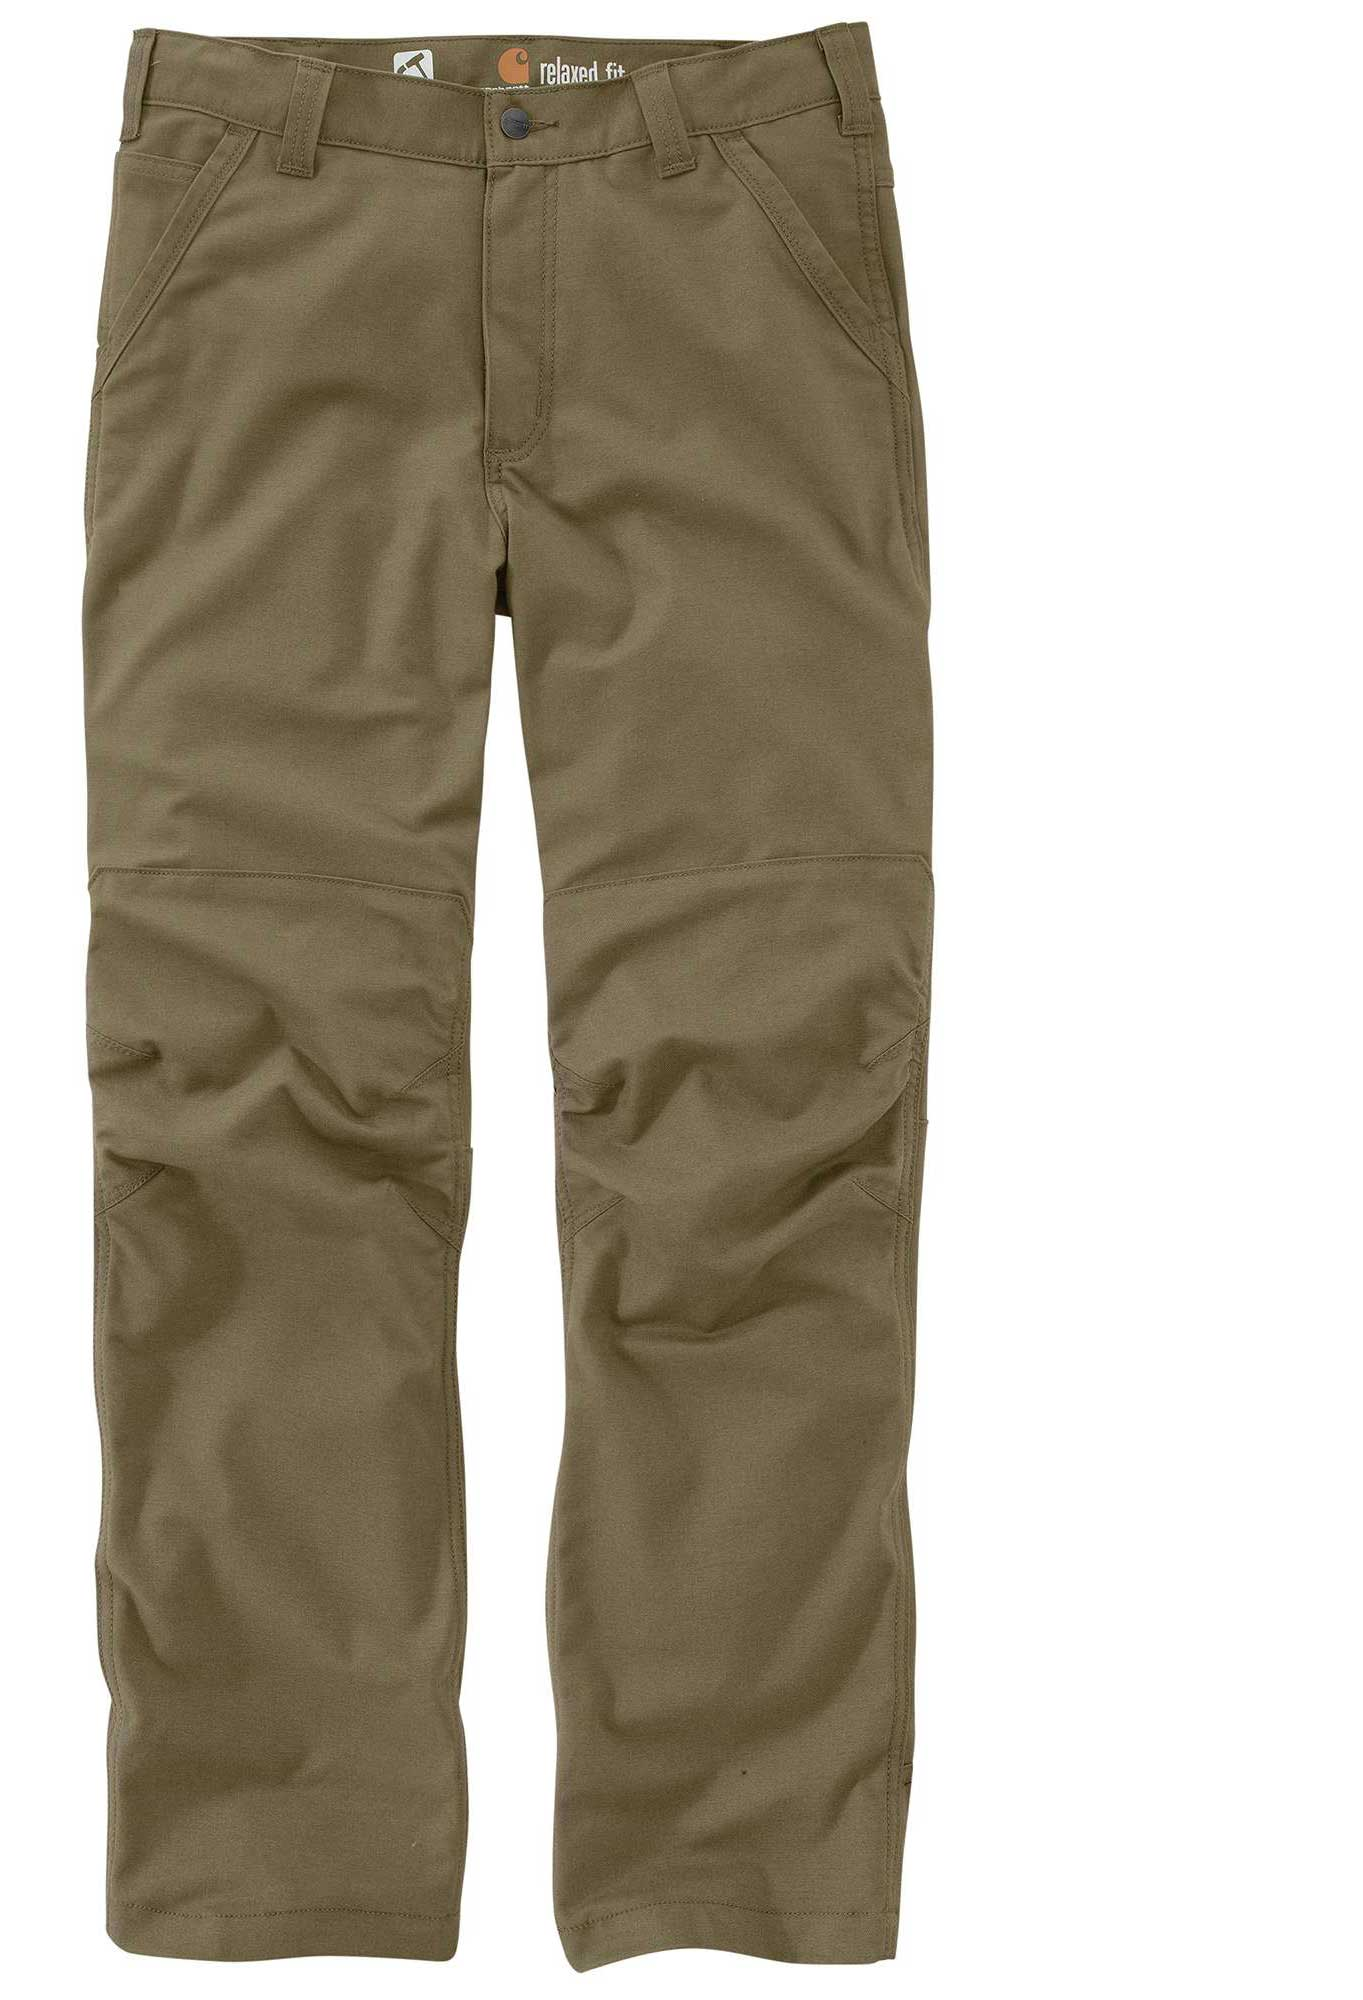 ea8e49bd091 Six New Carhartt Pants Workers Will Love - Dungarees Work Wear Resources